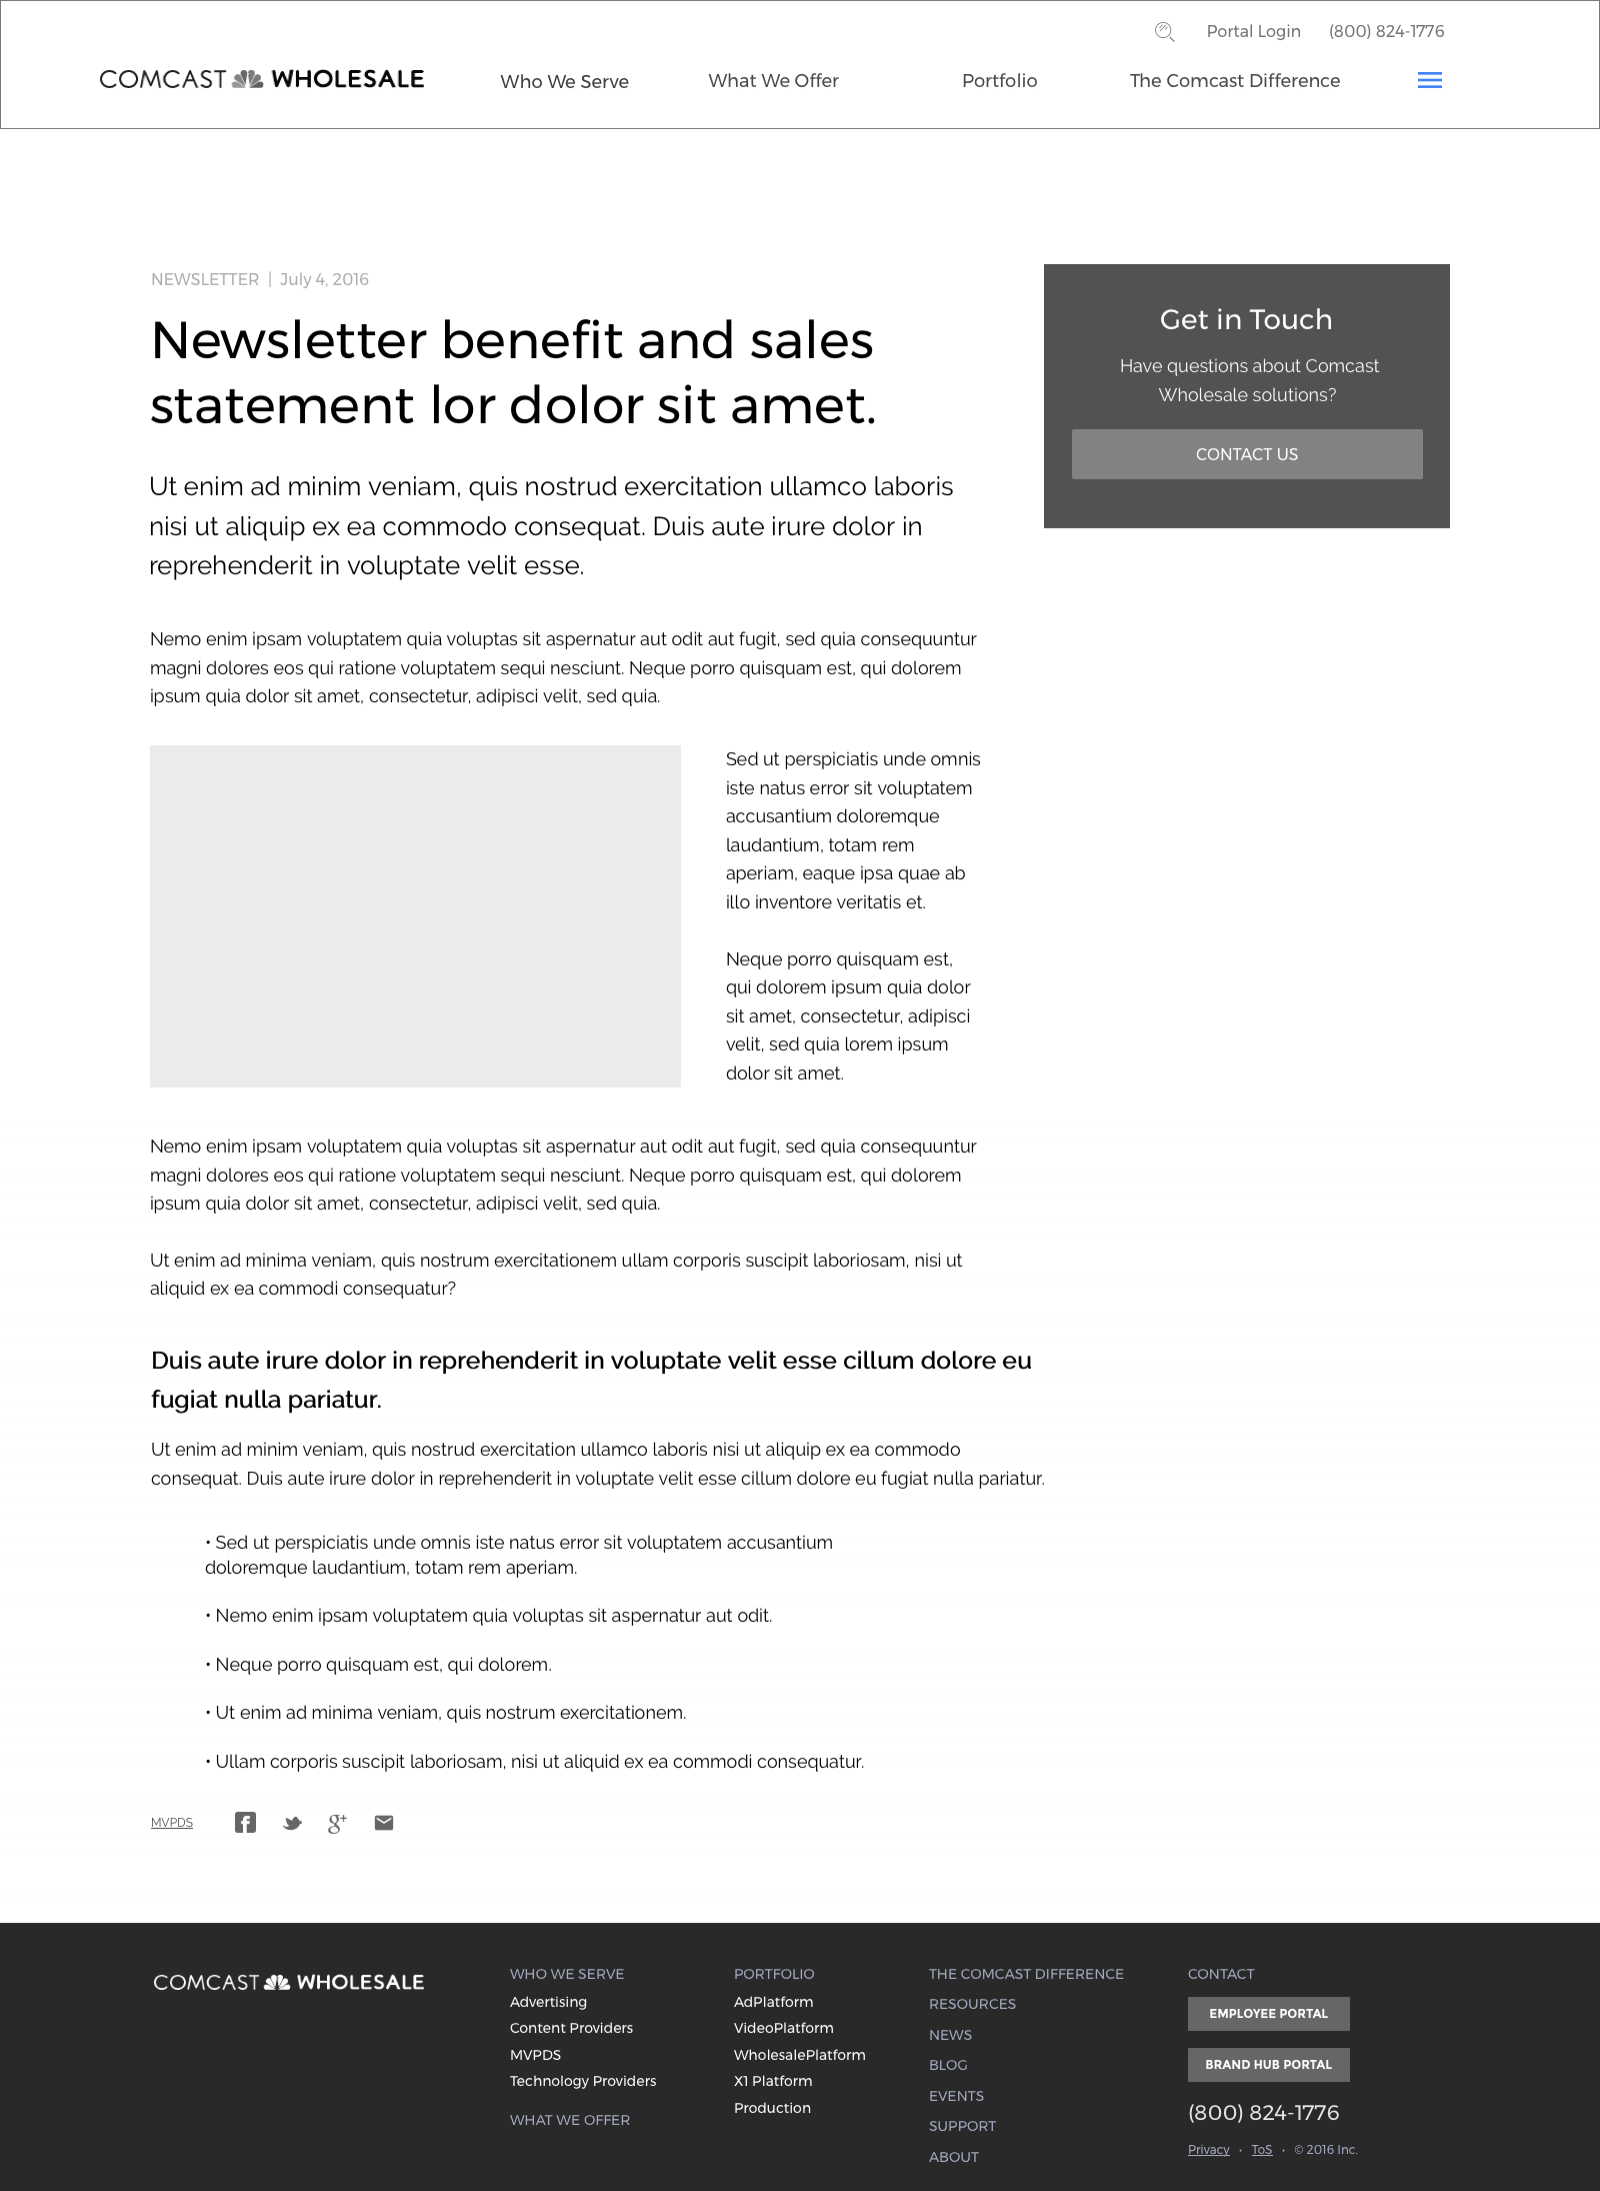 12-Resource-Newsletter-Detail-54550340-1469736092.png